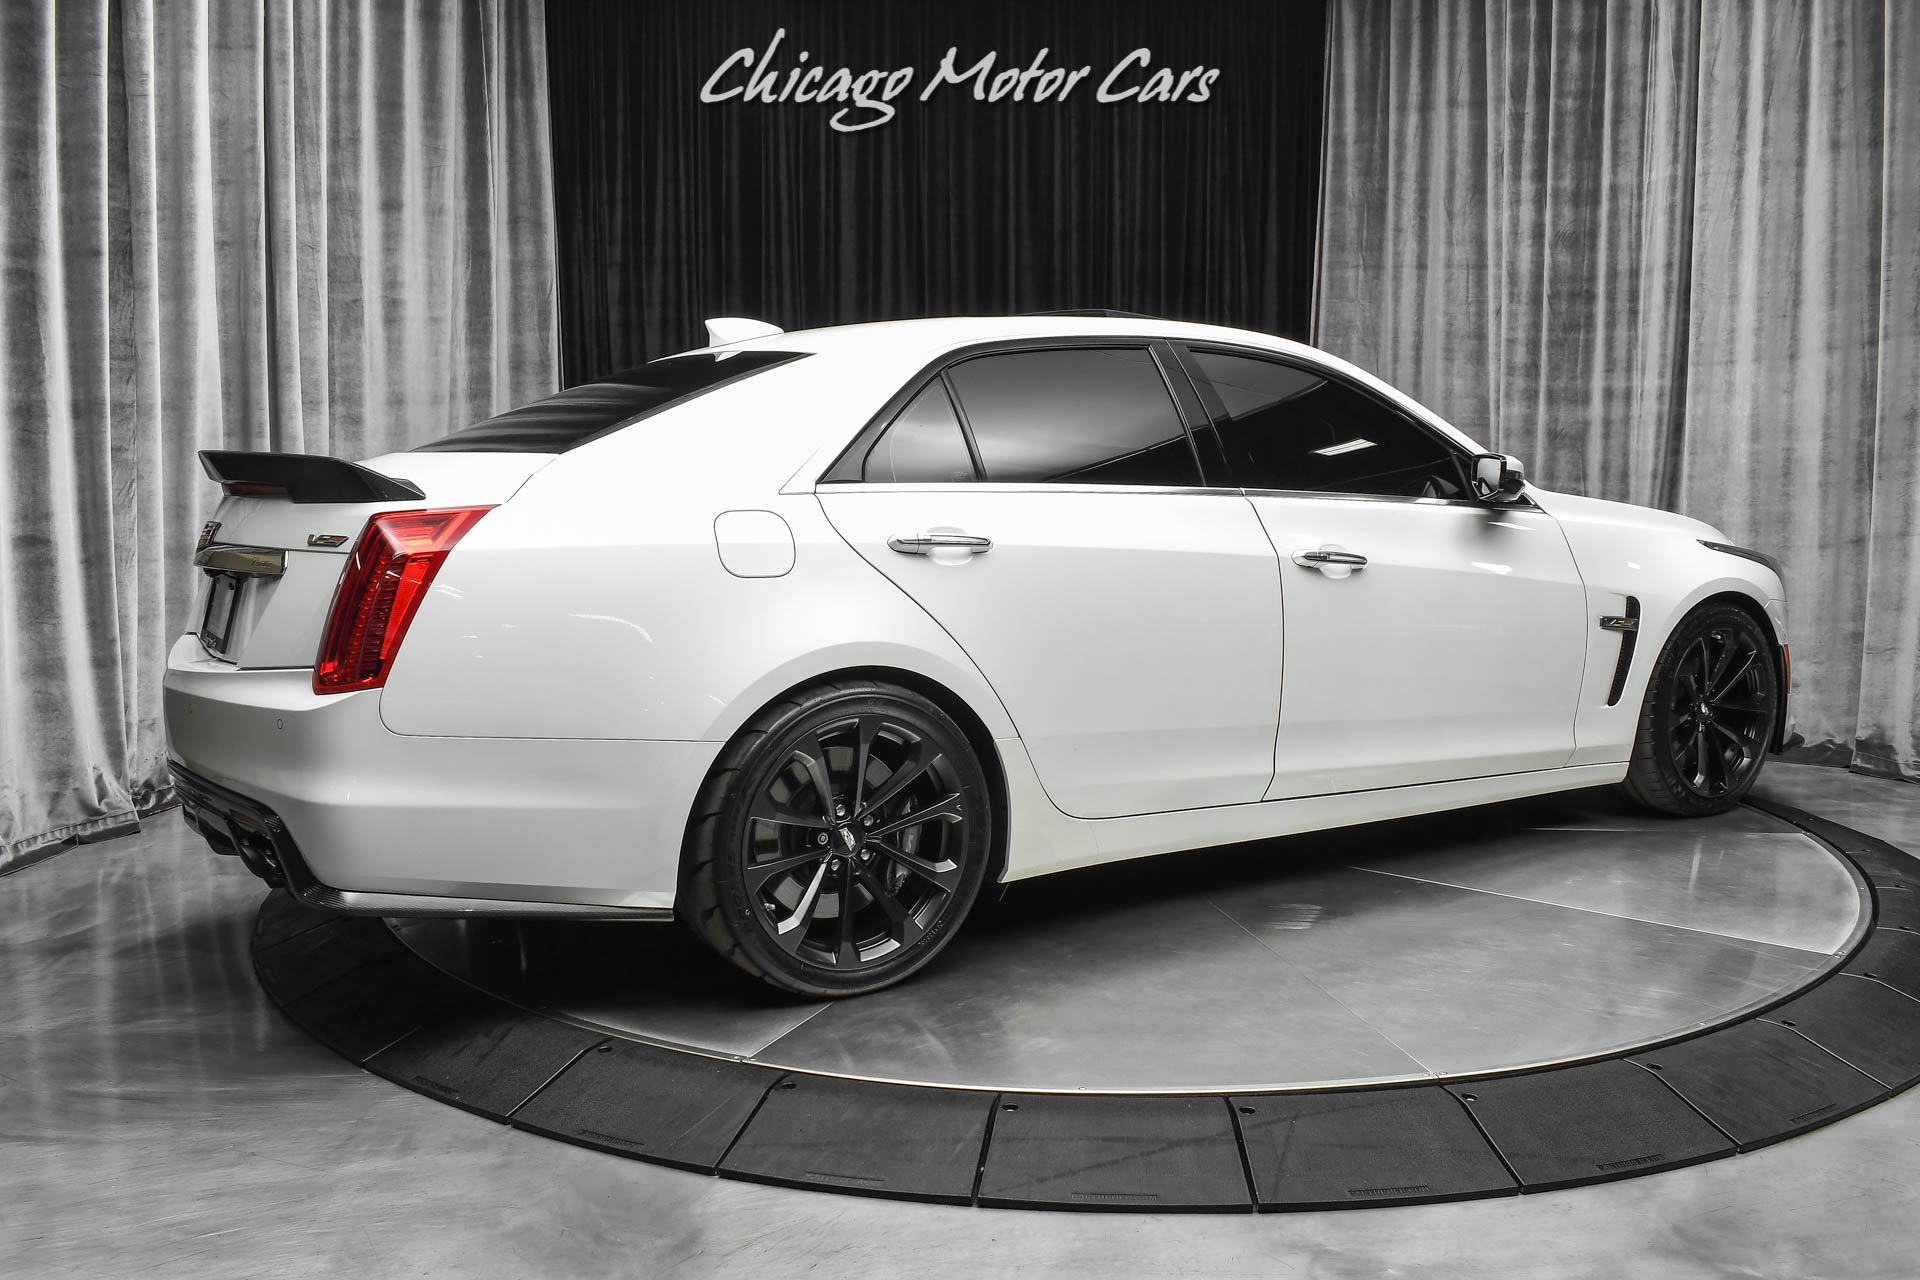 Used-2017-Cadillac-CTS-V-108kMSRPUPGRADES-Carbon-Fiber-Package-700WHP-Loaded